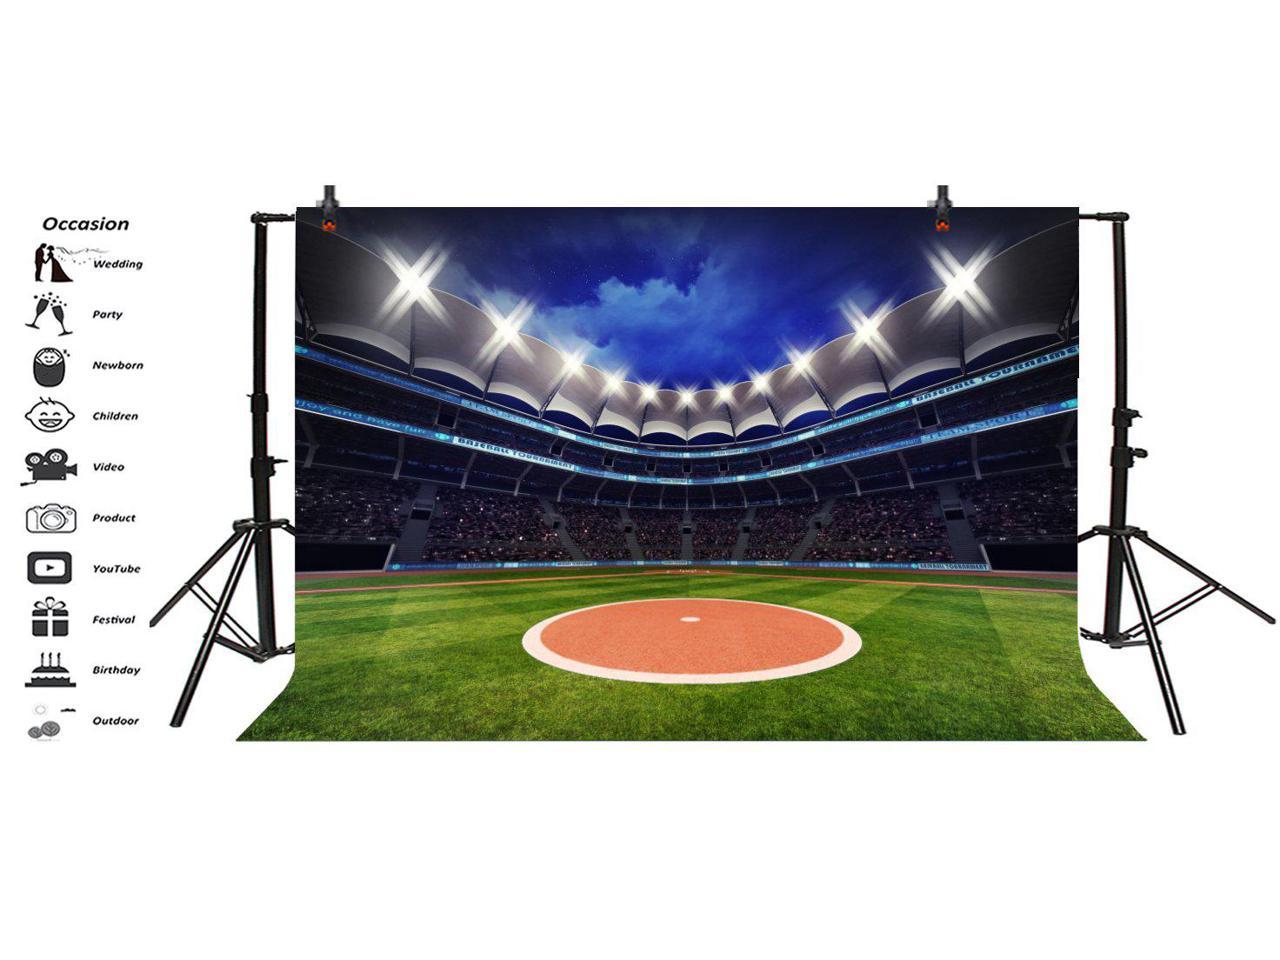 Photography Background Baseball Photo Backdrop 10x8ft Baseball Sports Game Stadium Backdrop Pictures Newborn Boy Children Portrait Photo Booth Shooting Family Photographic Studio Props